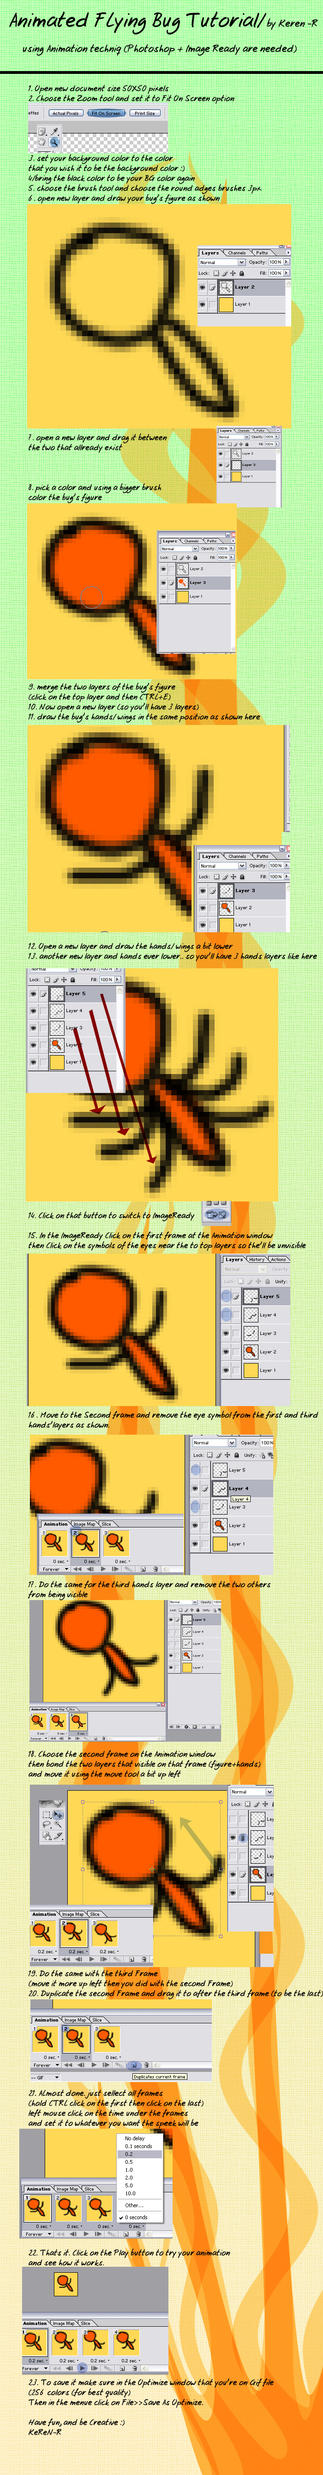 Animated Flying bug Tutorial by KeReN-R